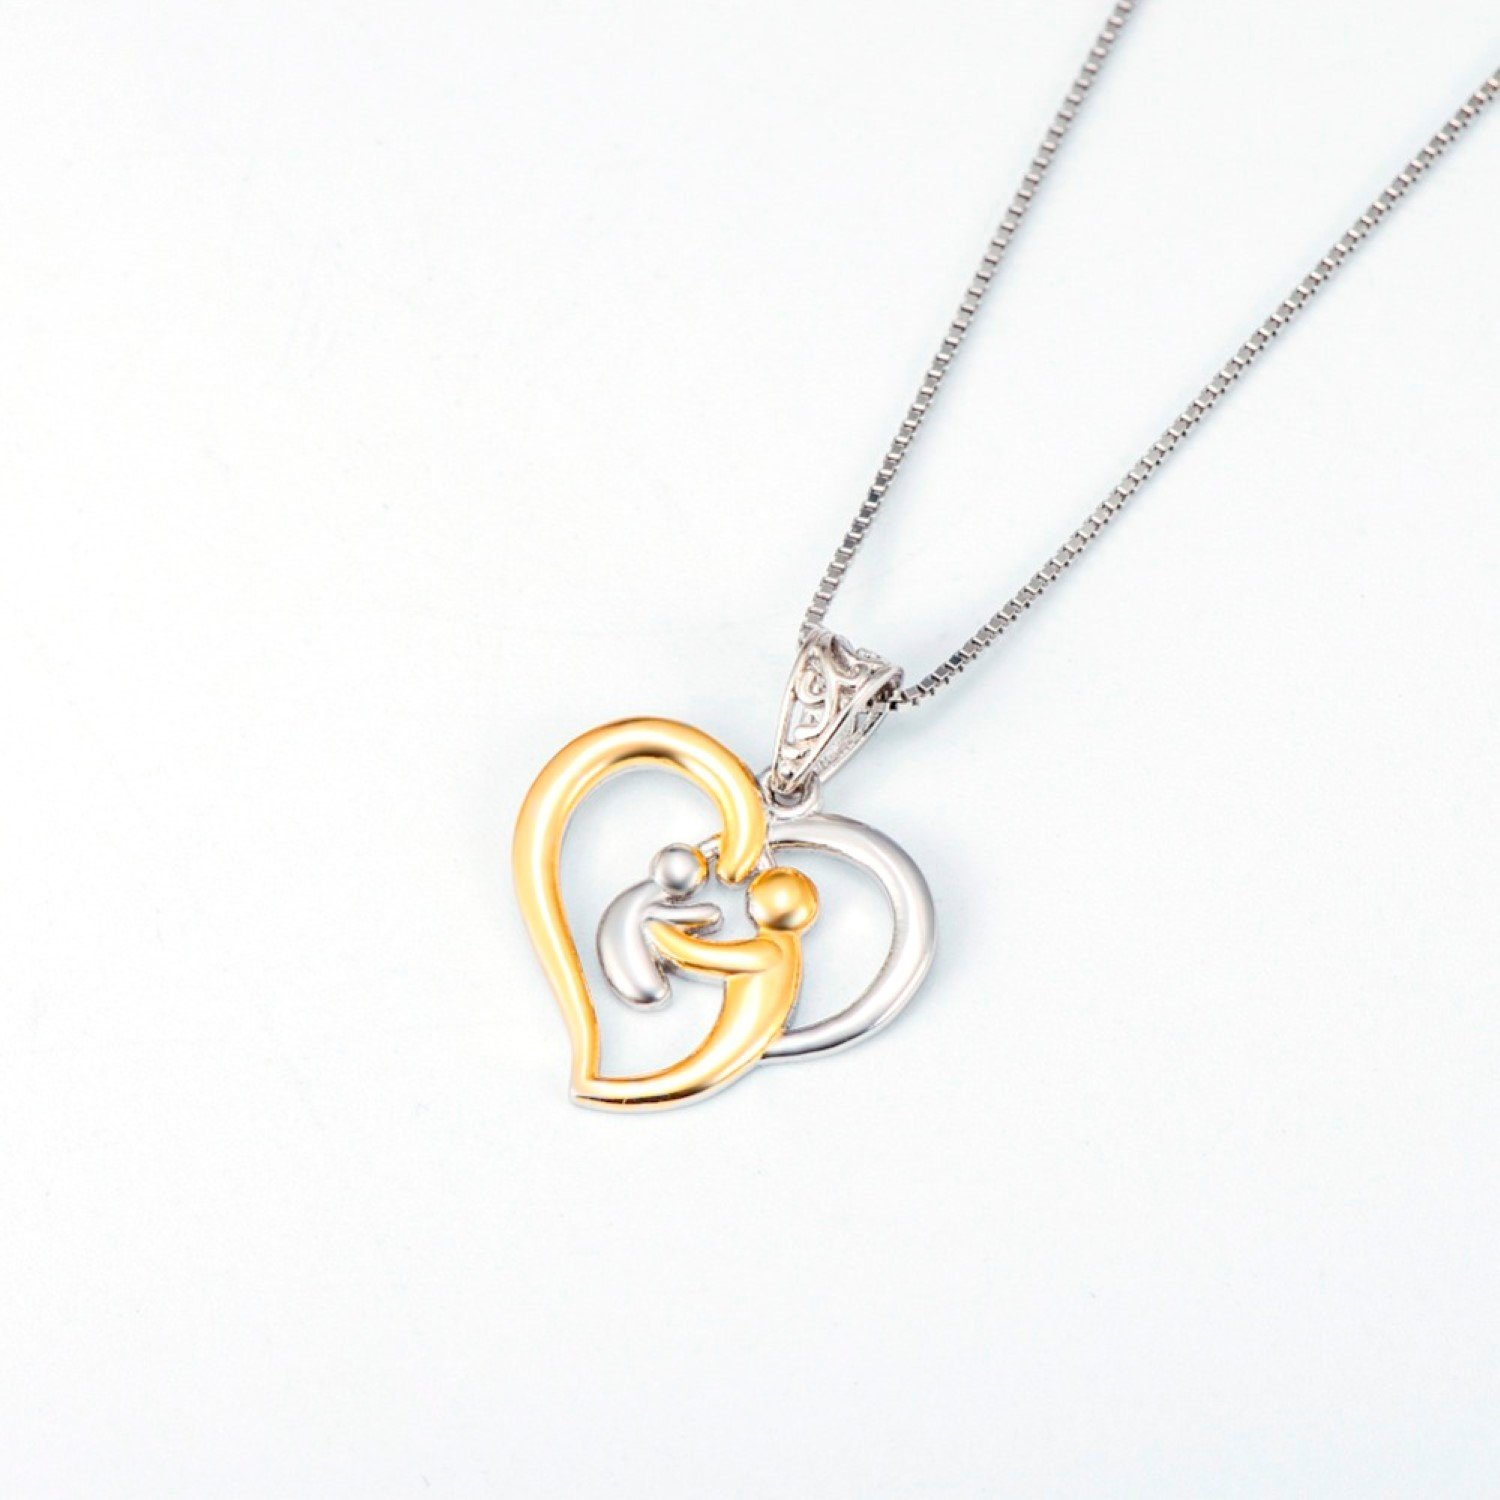 EverReena 925 Sterling Silver Necklace Mother Hold Child Love Heart Chain Pendant